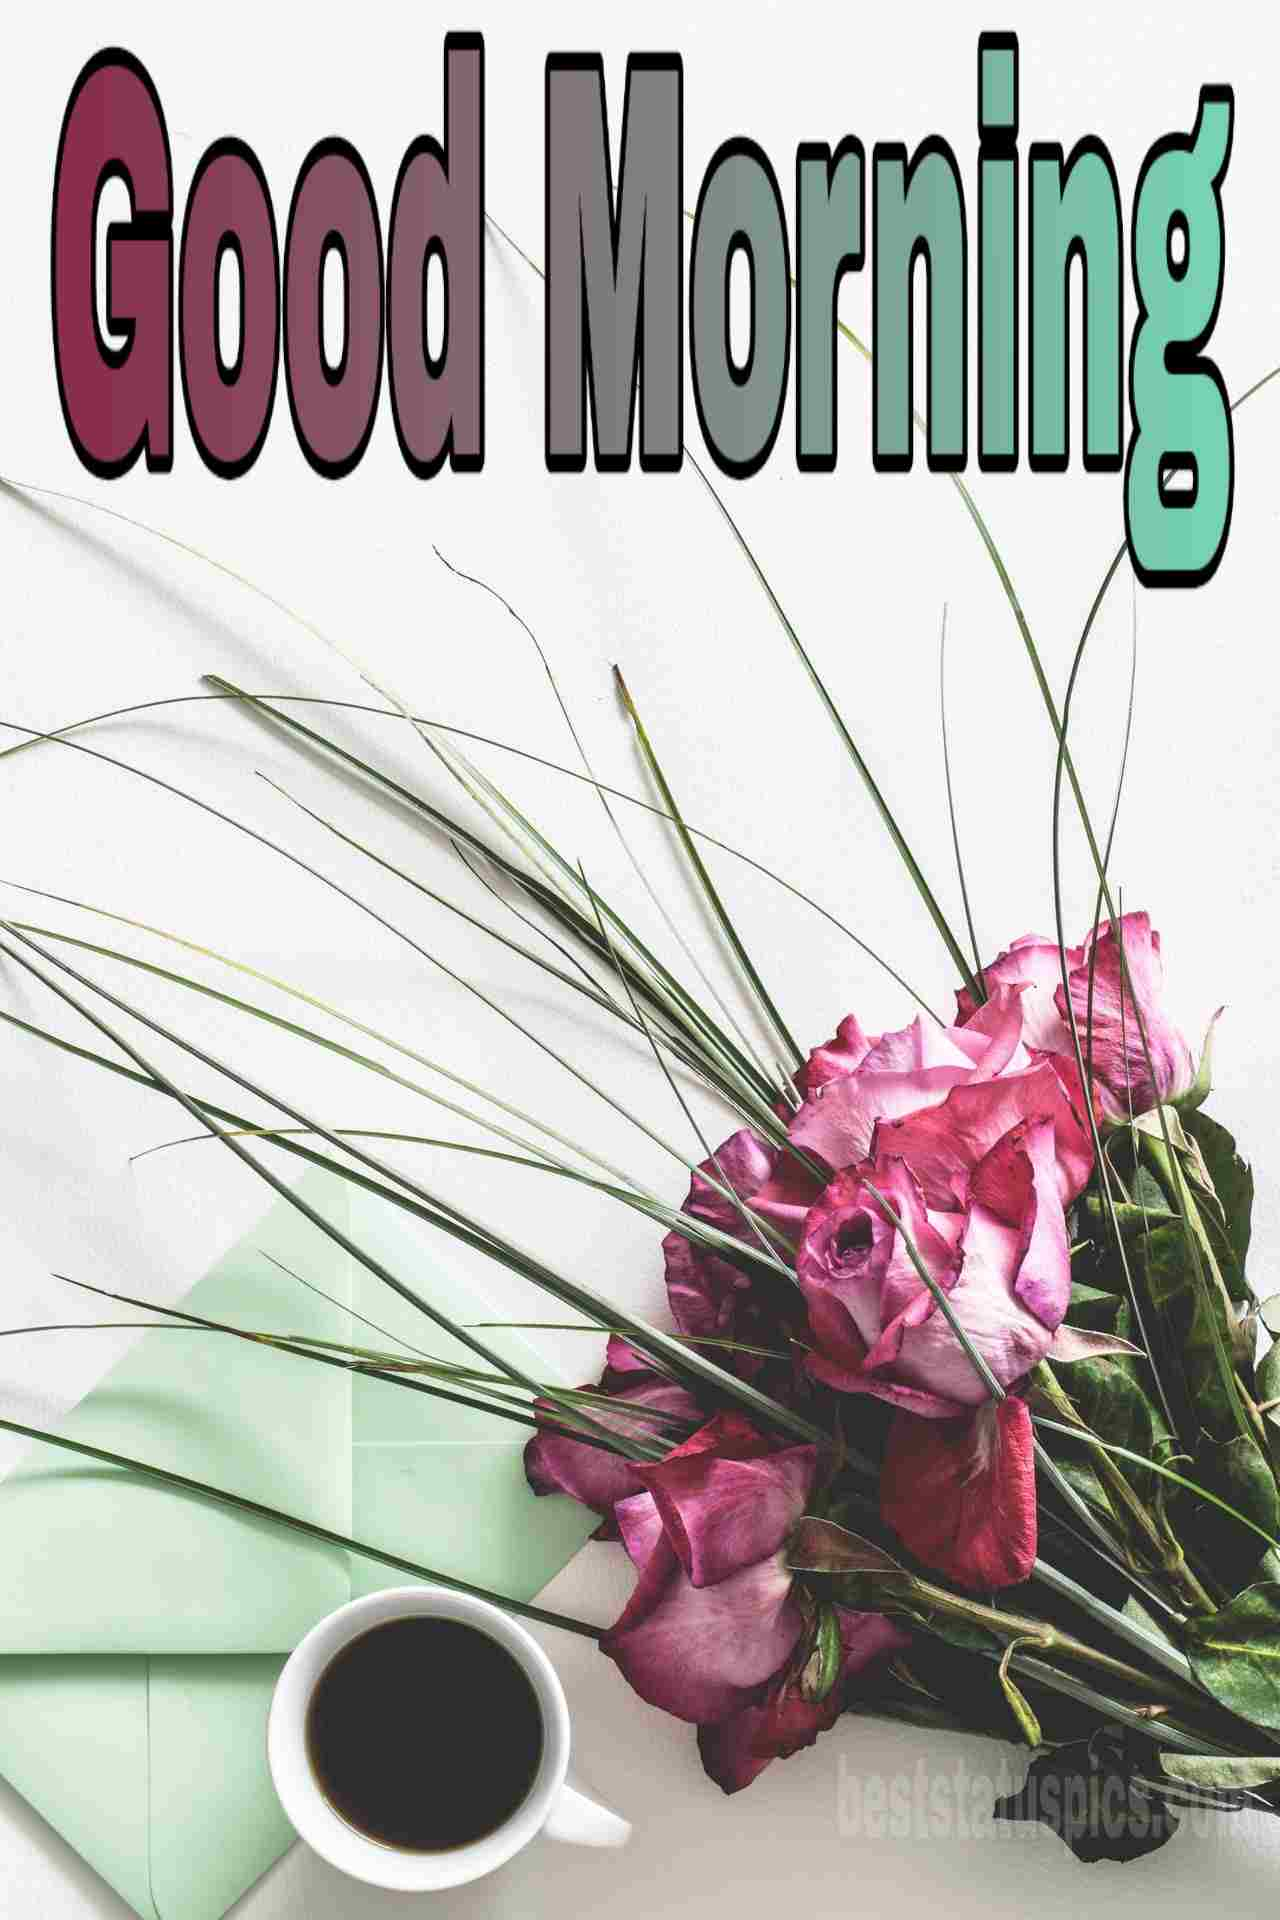 Good morning coffee and red rose buke picture for girlfriend